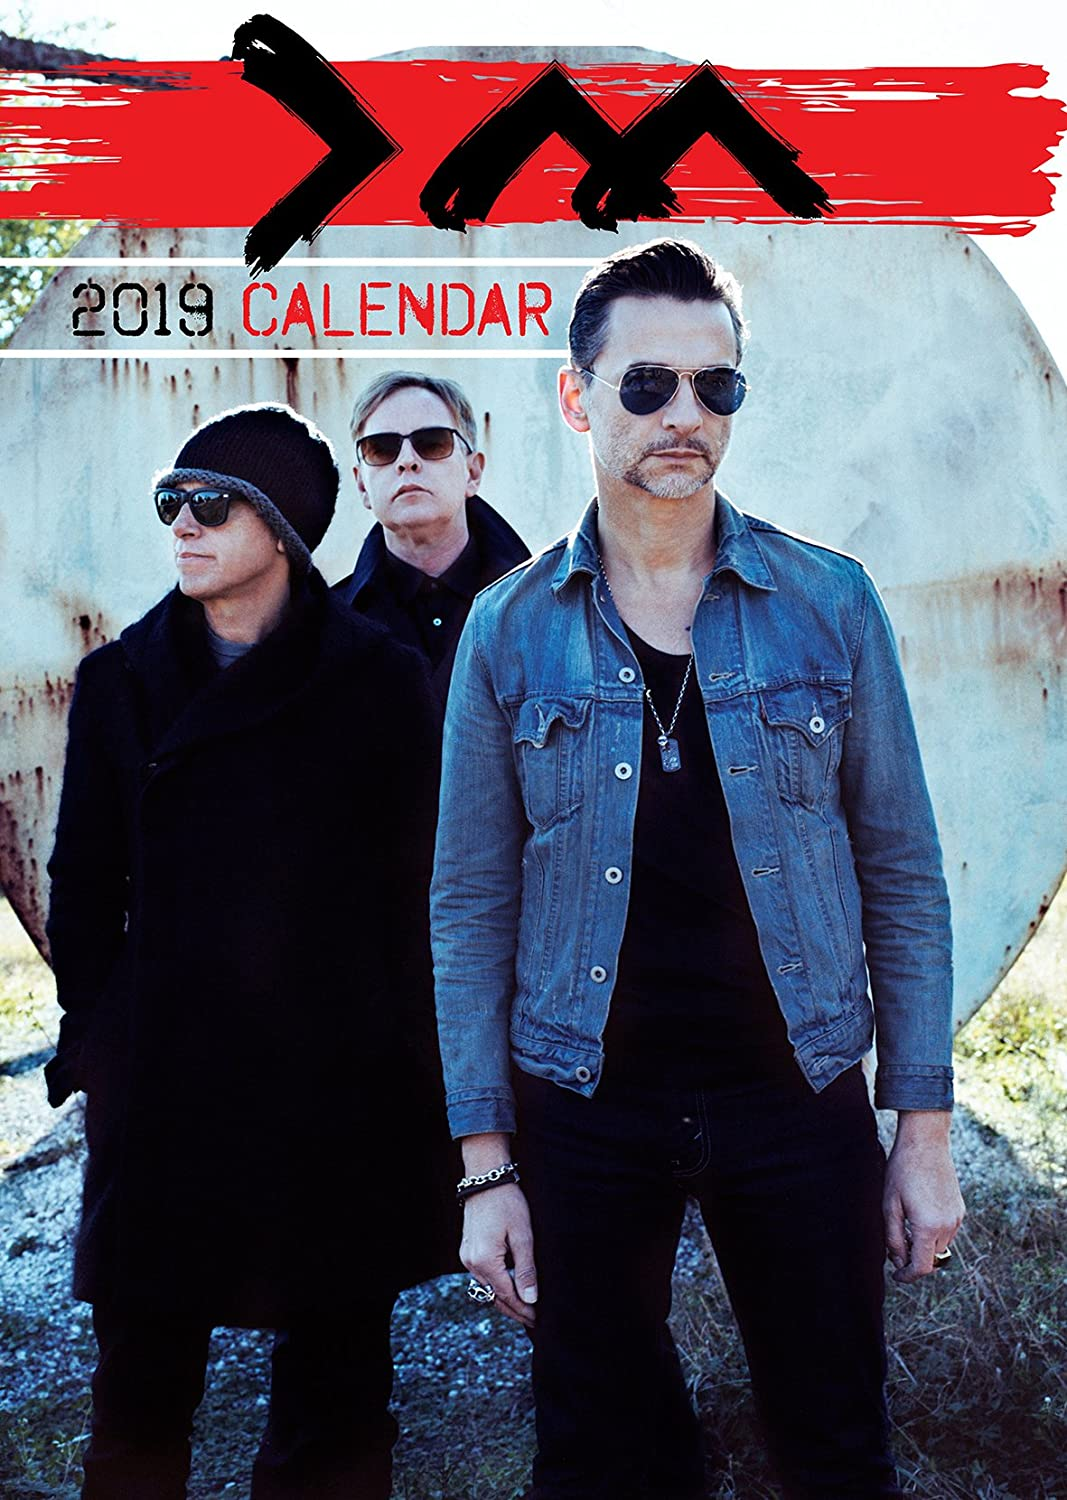 DEPECHE MODE CALENDAR 2019 LARGE (A3) POSTER SIZE WALL CALENDAR FACTORY SEALED BY OC (WITH A FREE XMAS GIFT FROM 1ST)